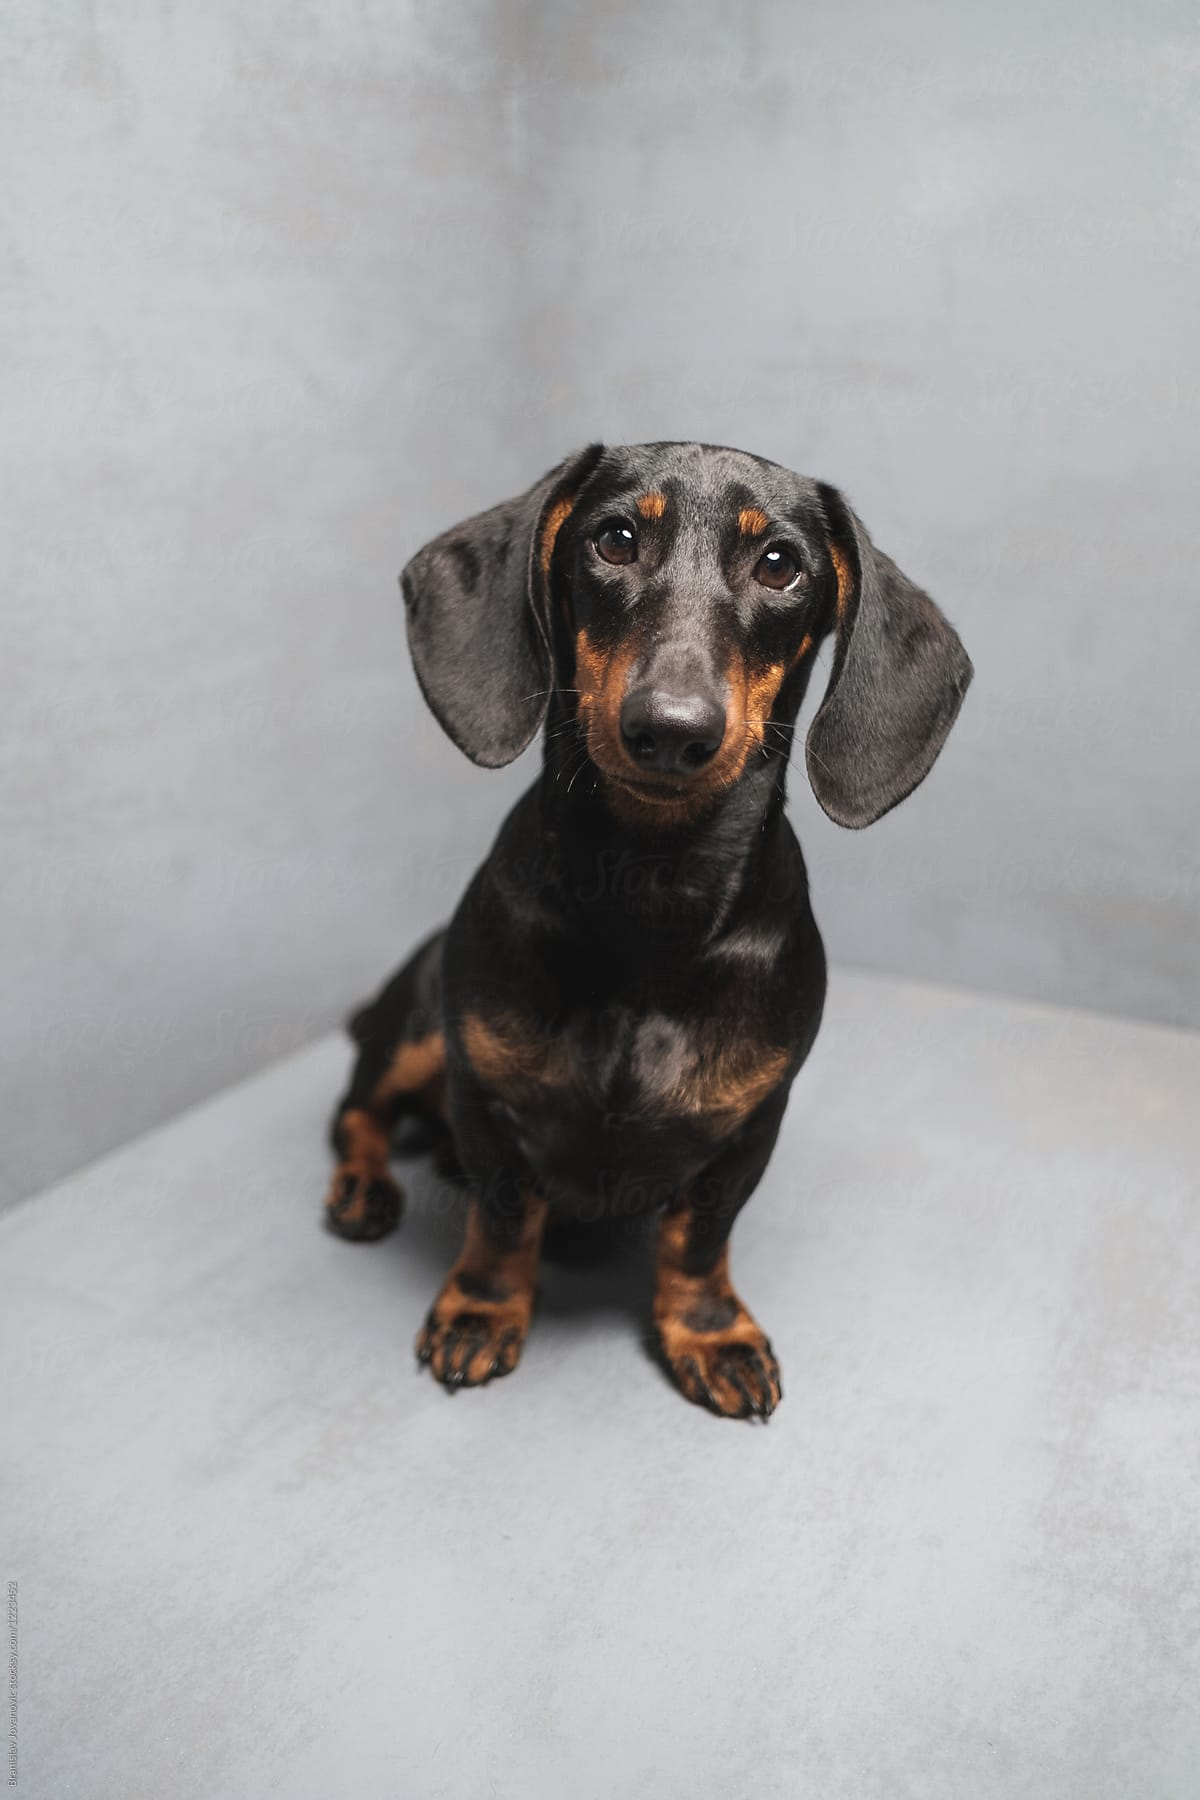 Dachshund Puppy Portrait On Grey Background Por Brkati Krokodil Dachshund Puppy Stocksy United